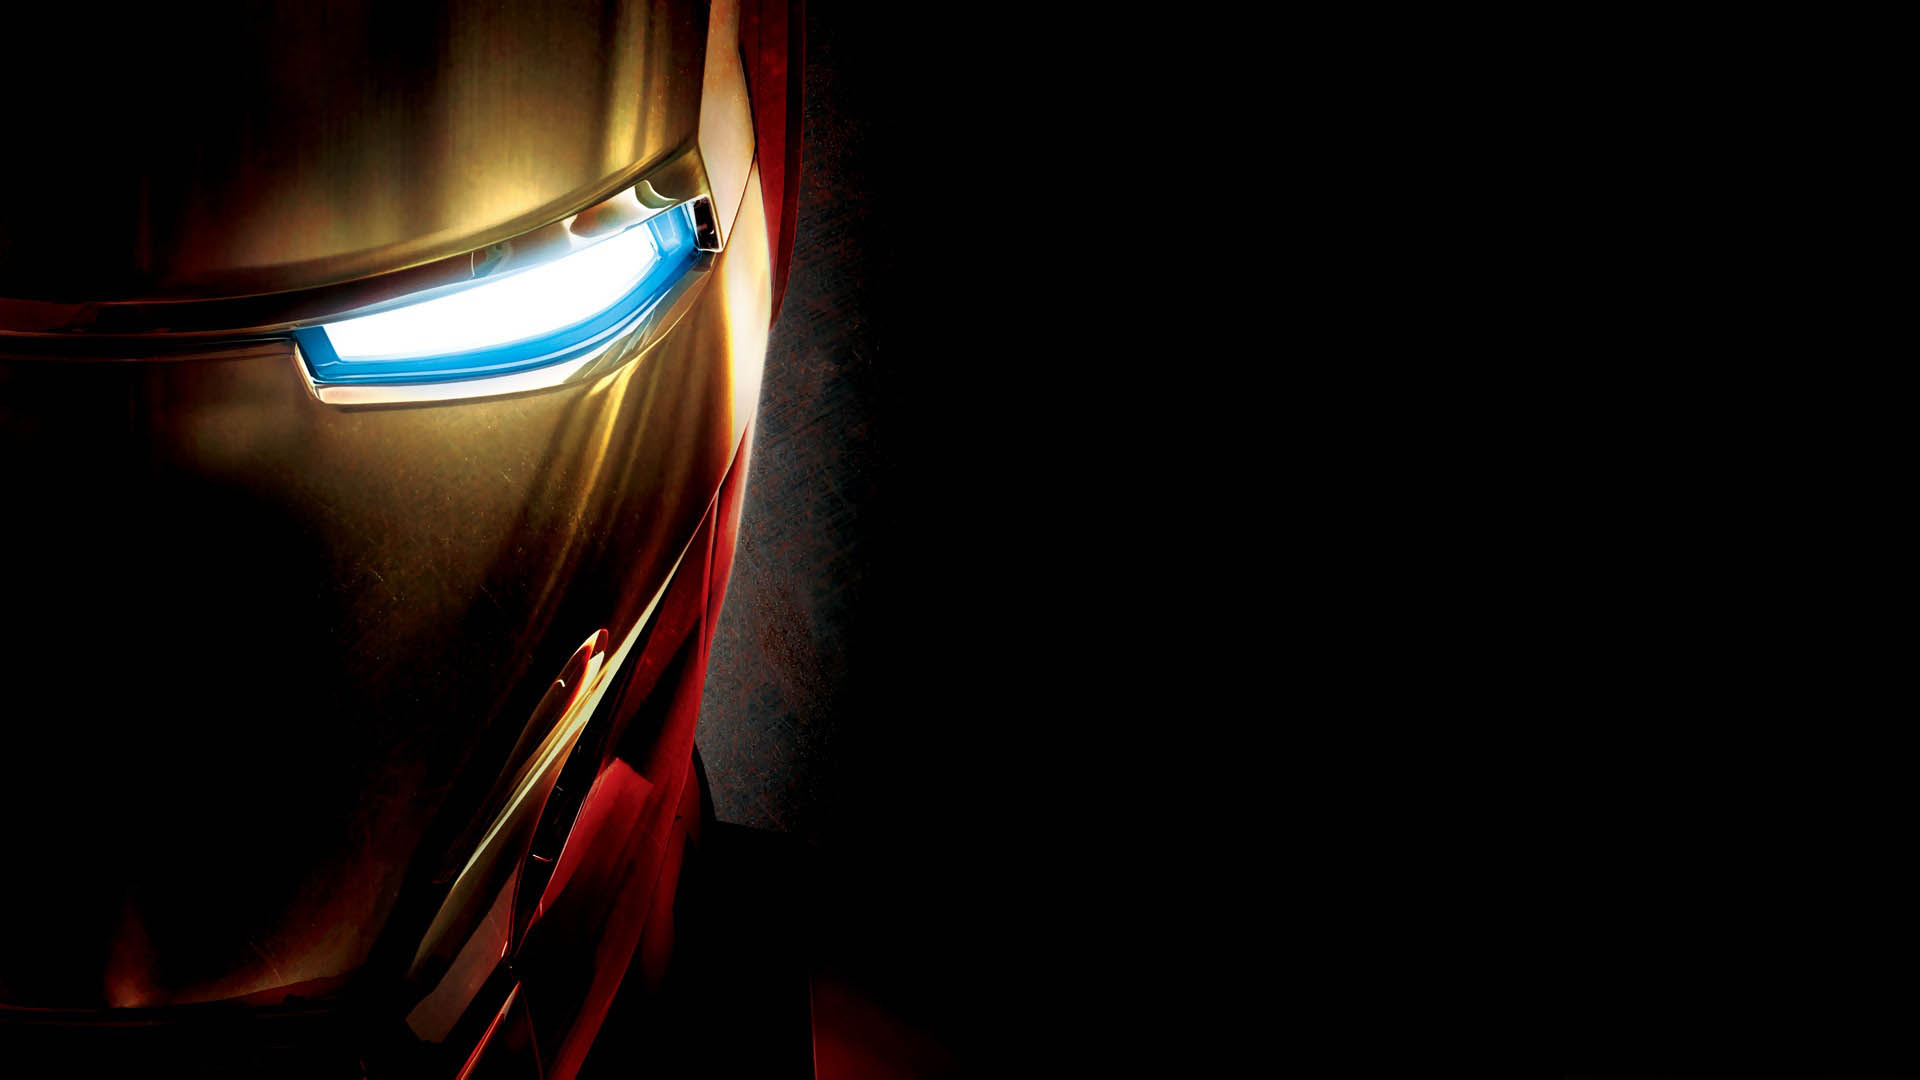 Iron Man 3 Wallpaper 1 1920x1080